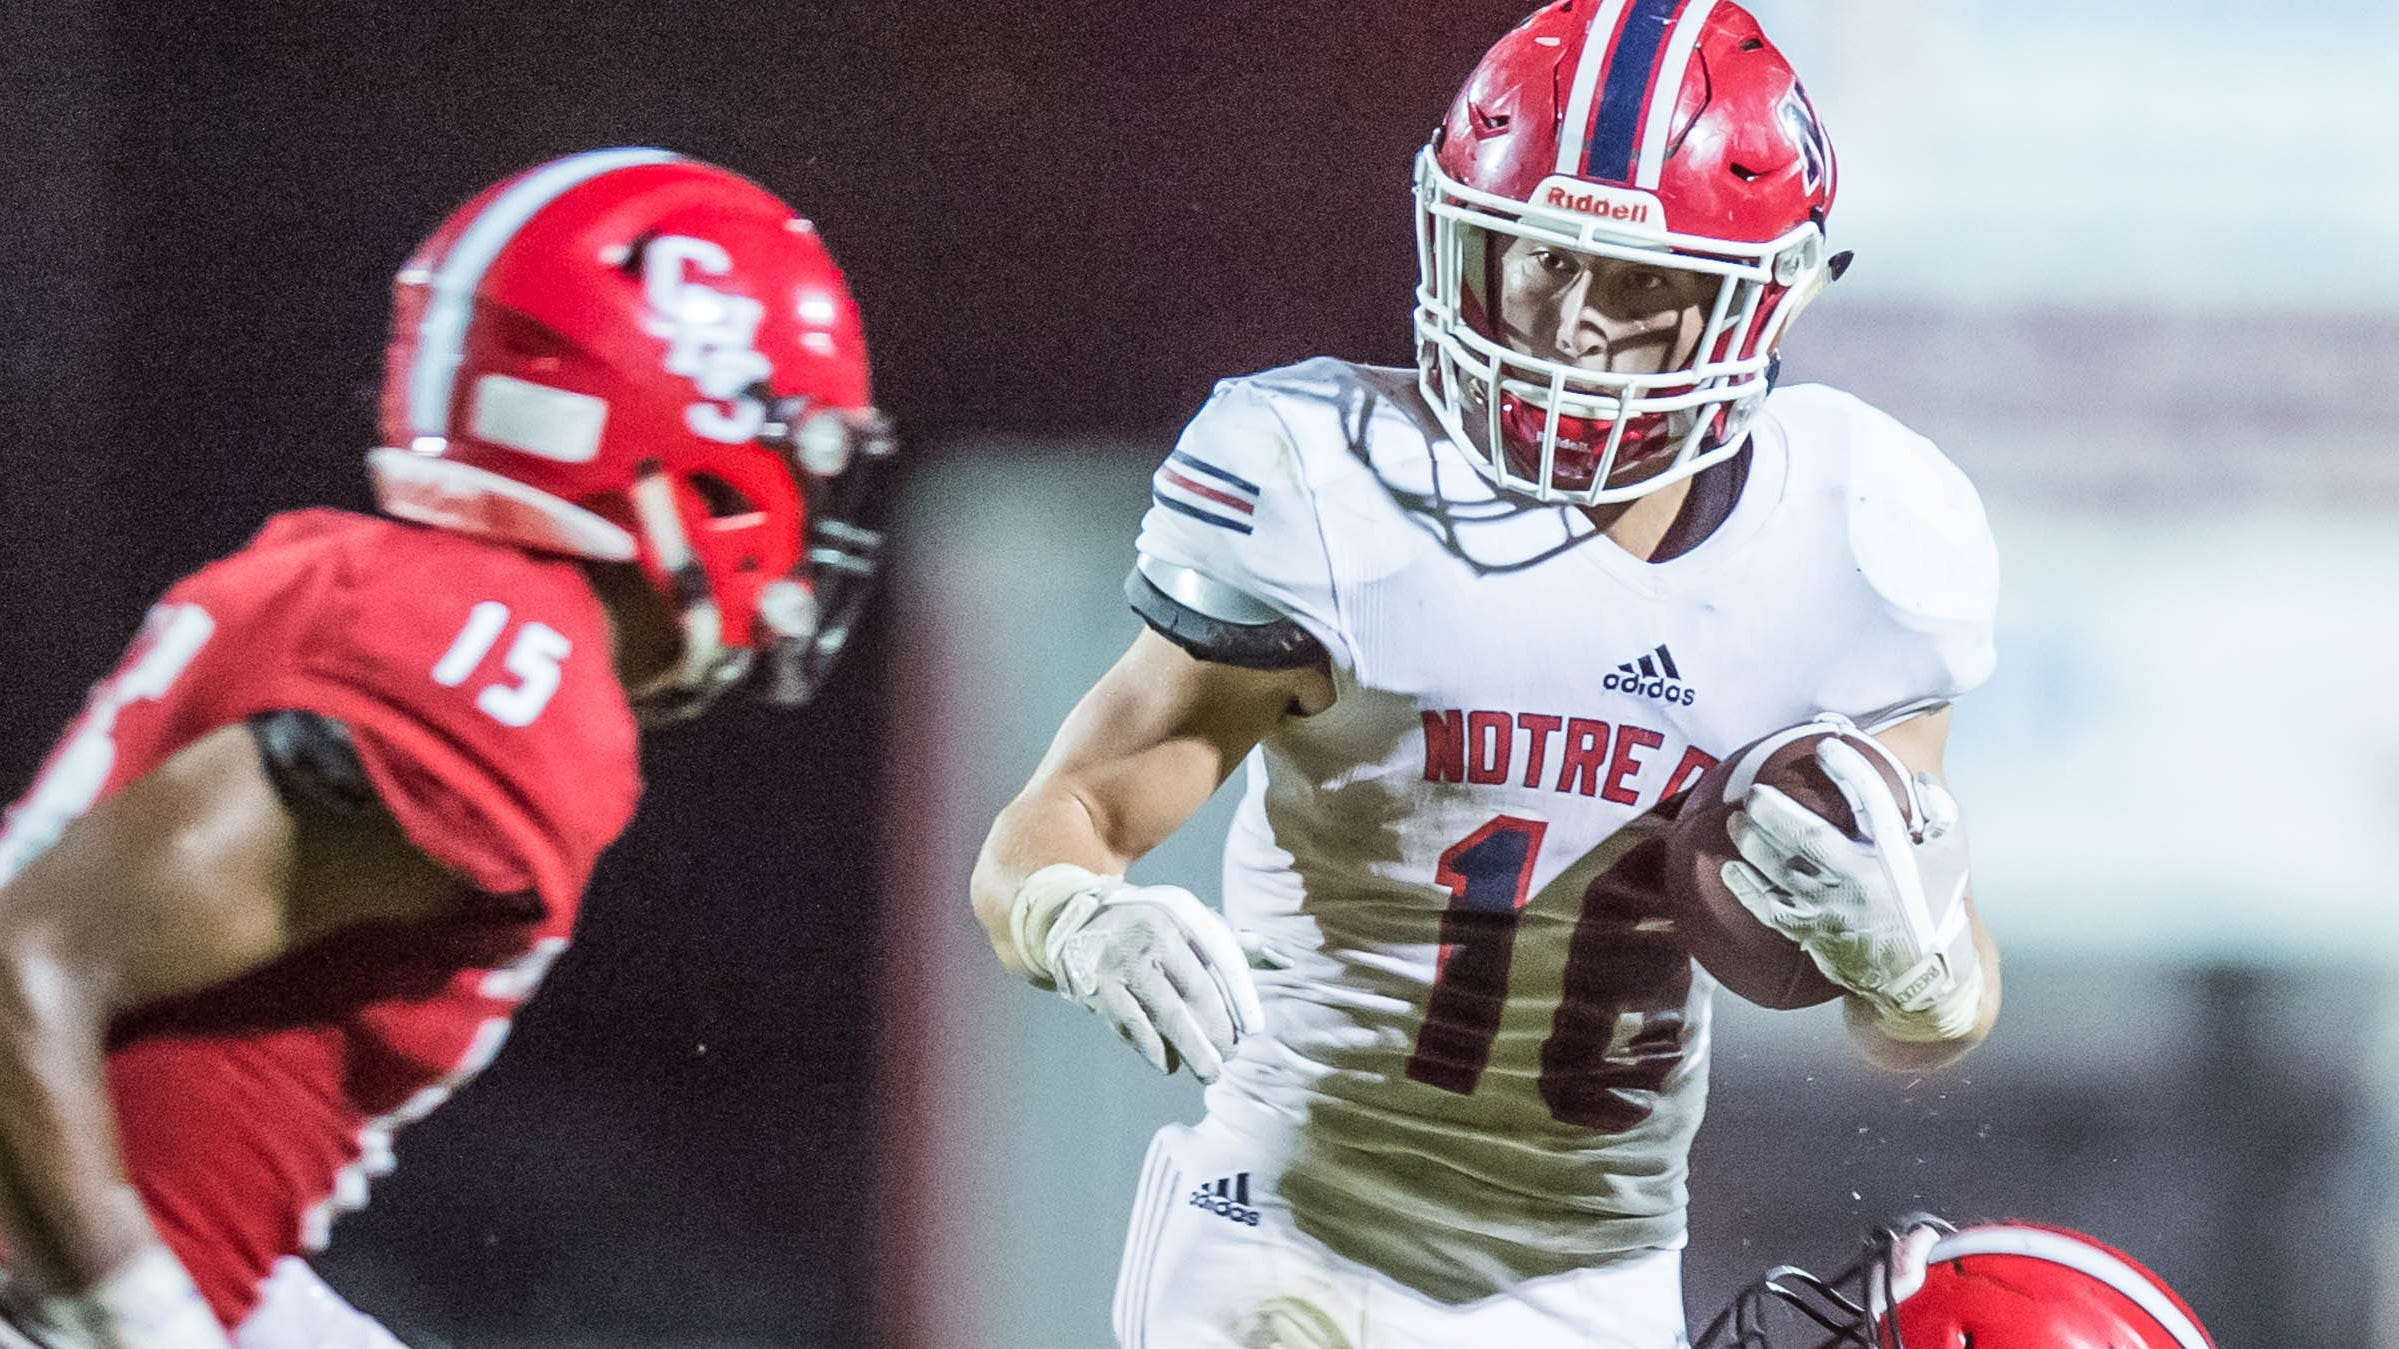 Revenge or not, Notre Dame drops hammer in rematch with Catholic-NI